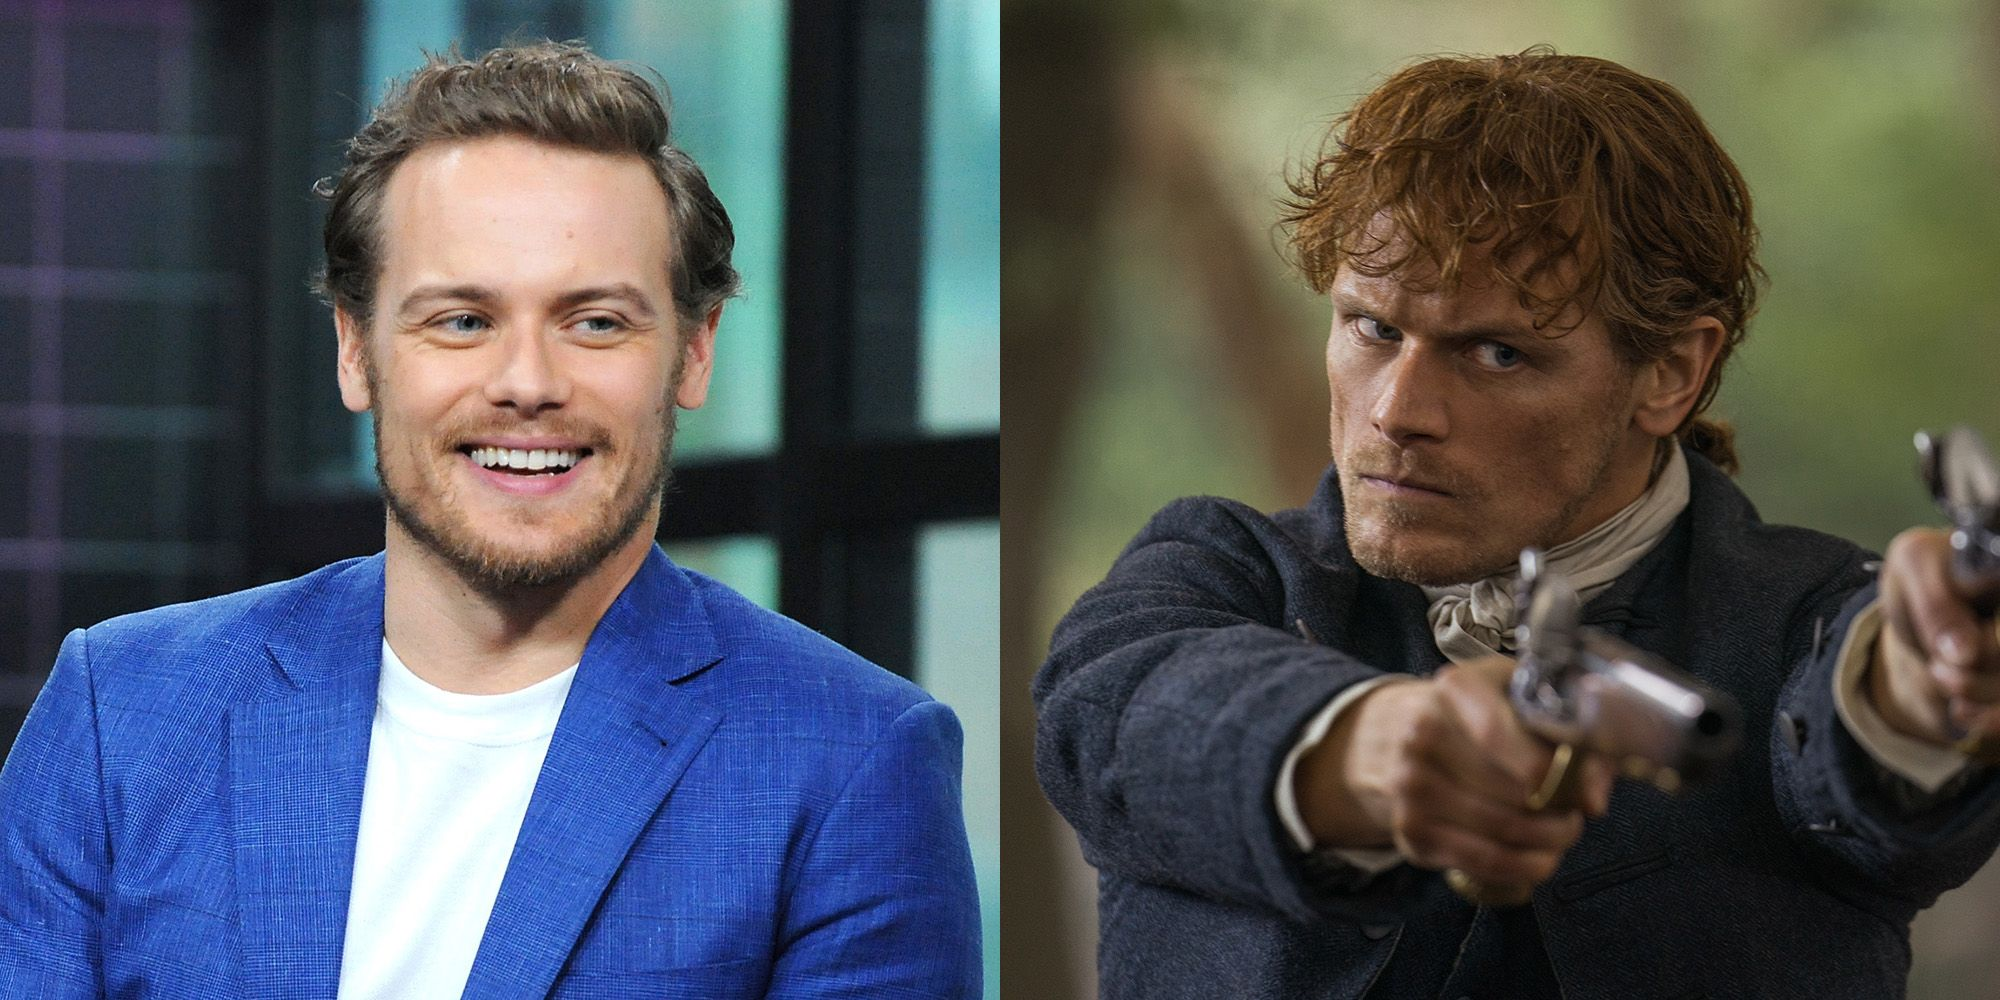 What the Cast of Outlander Looks Like in Real Life - Cast of